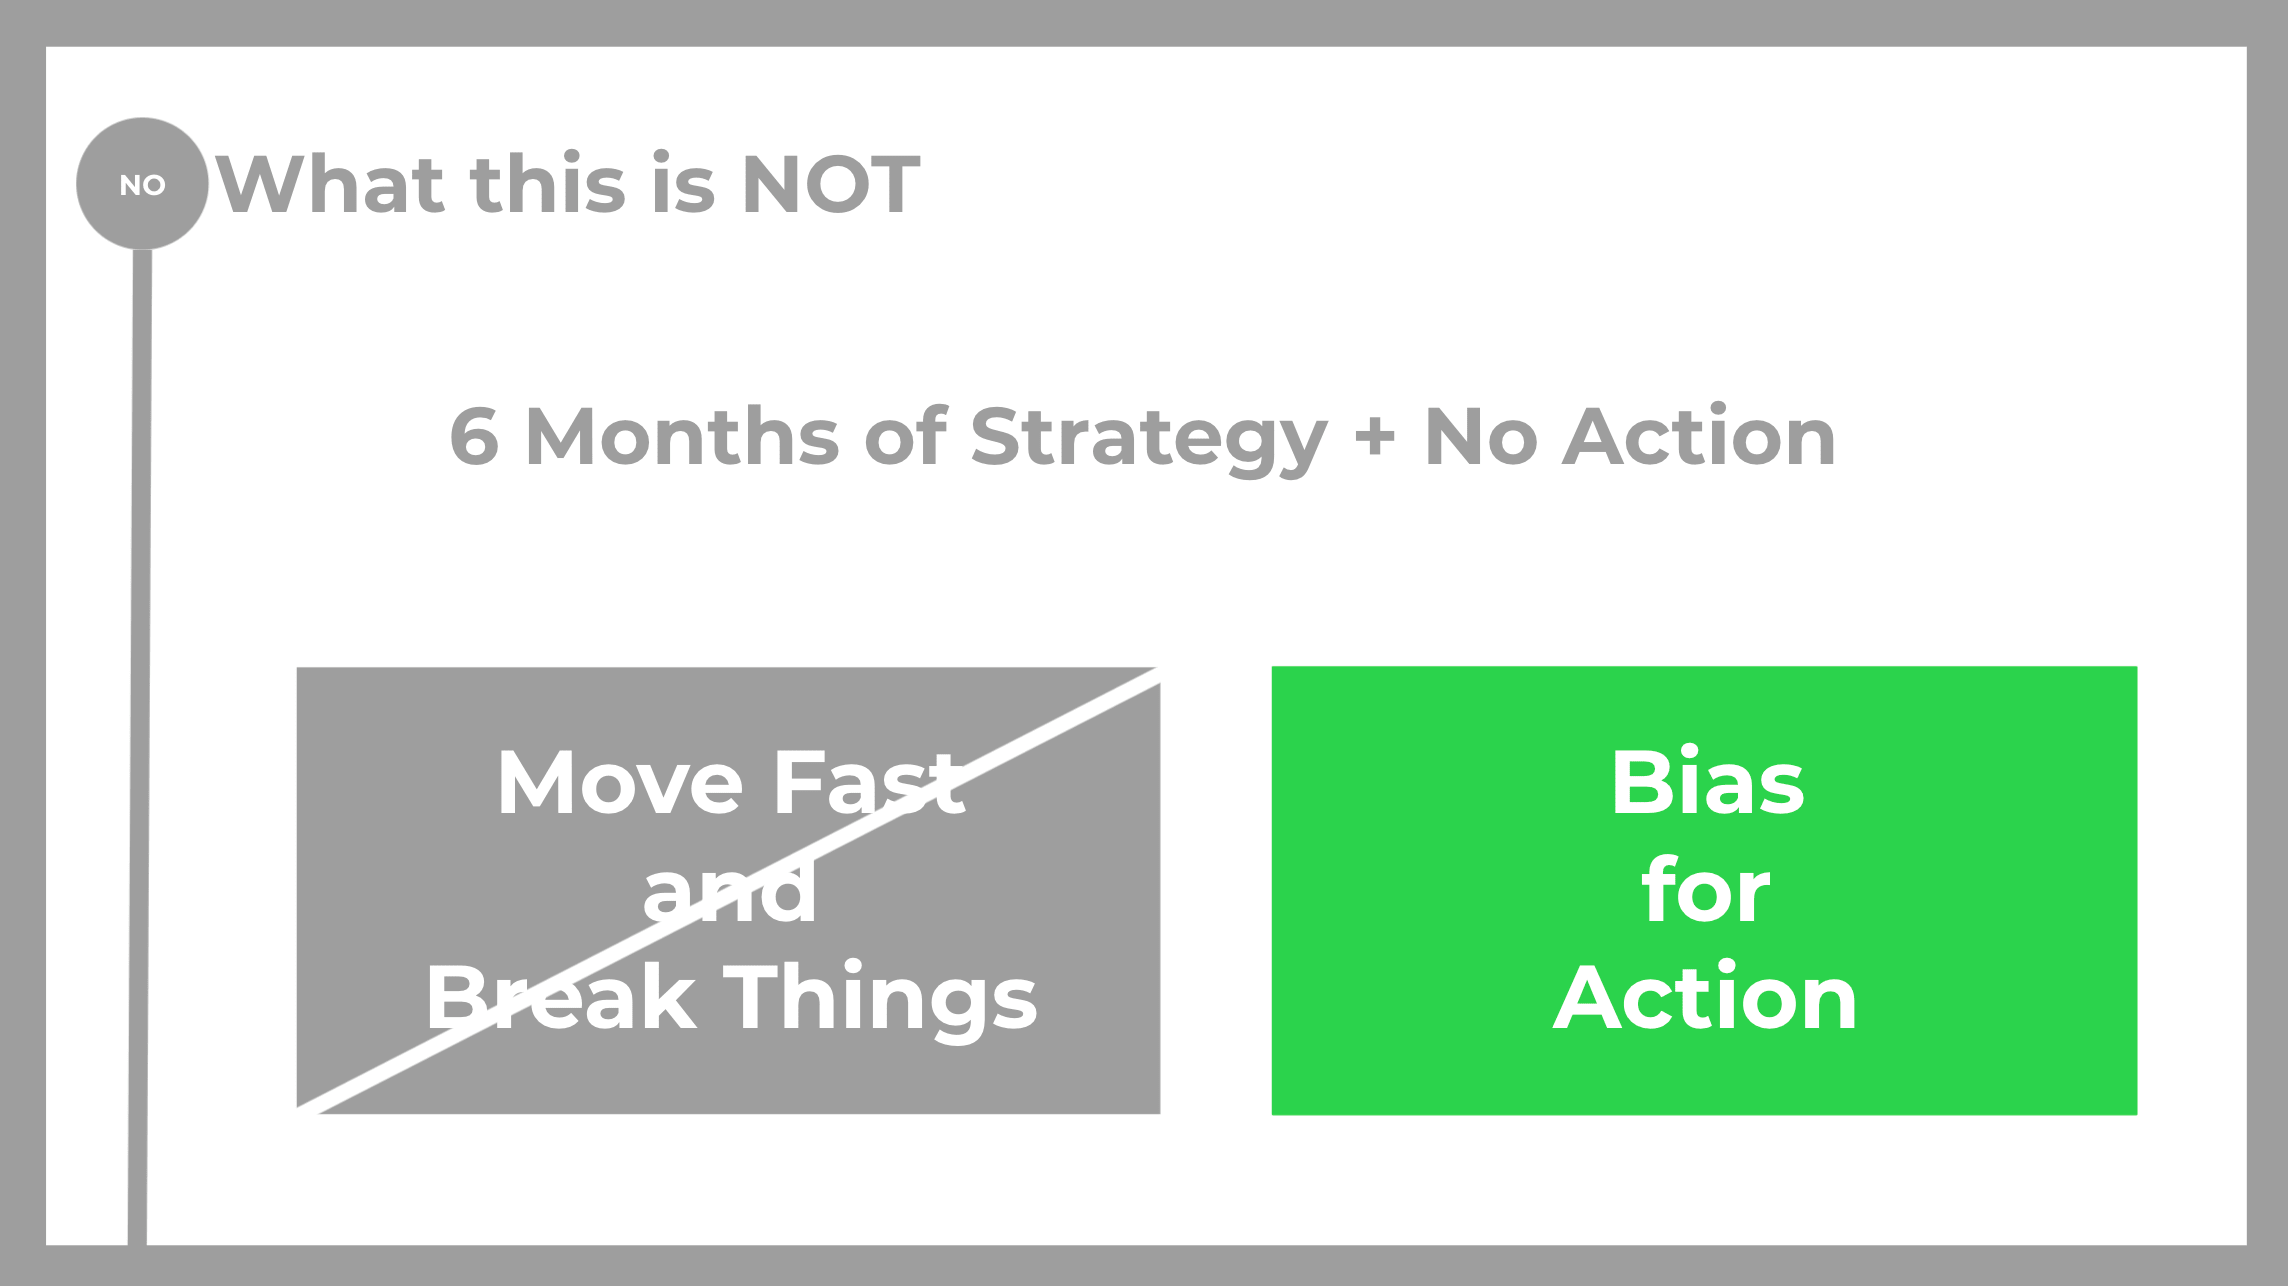 don't move fast and break things. have a bias for action.